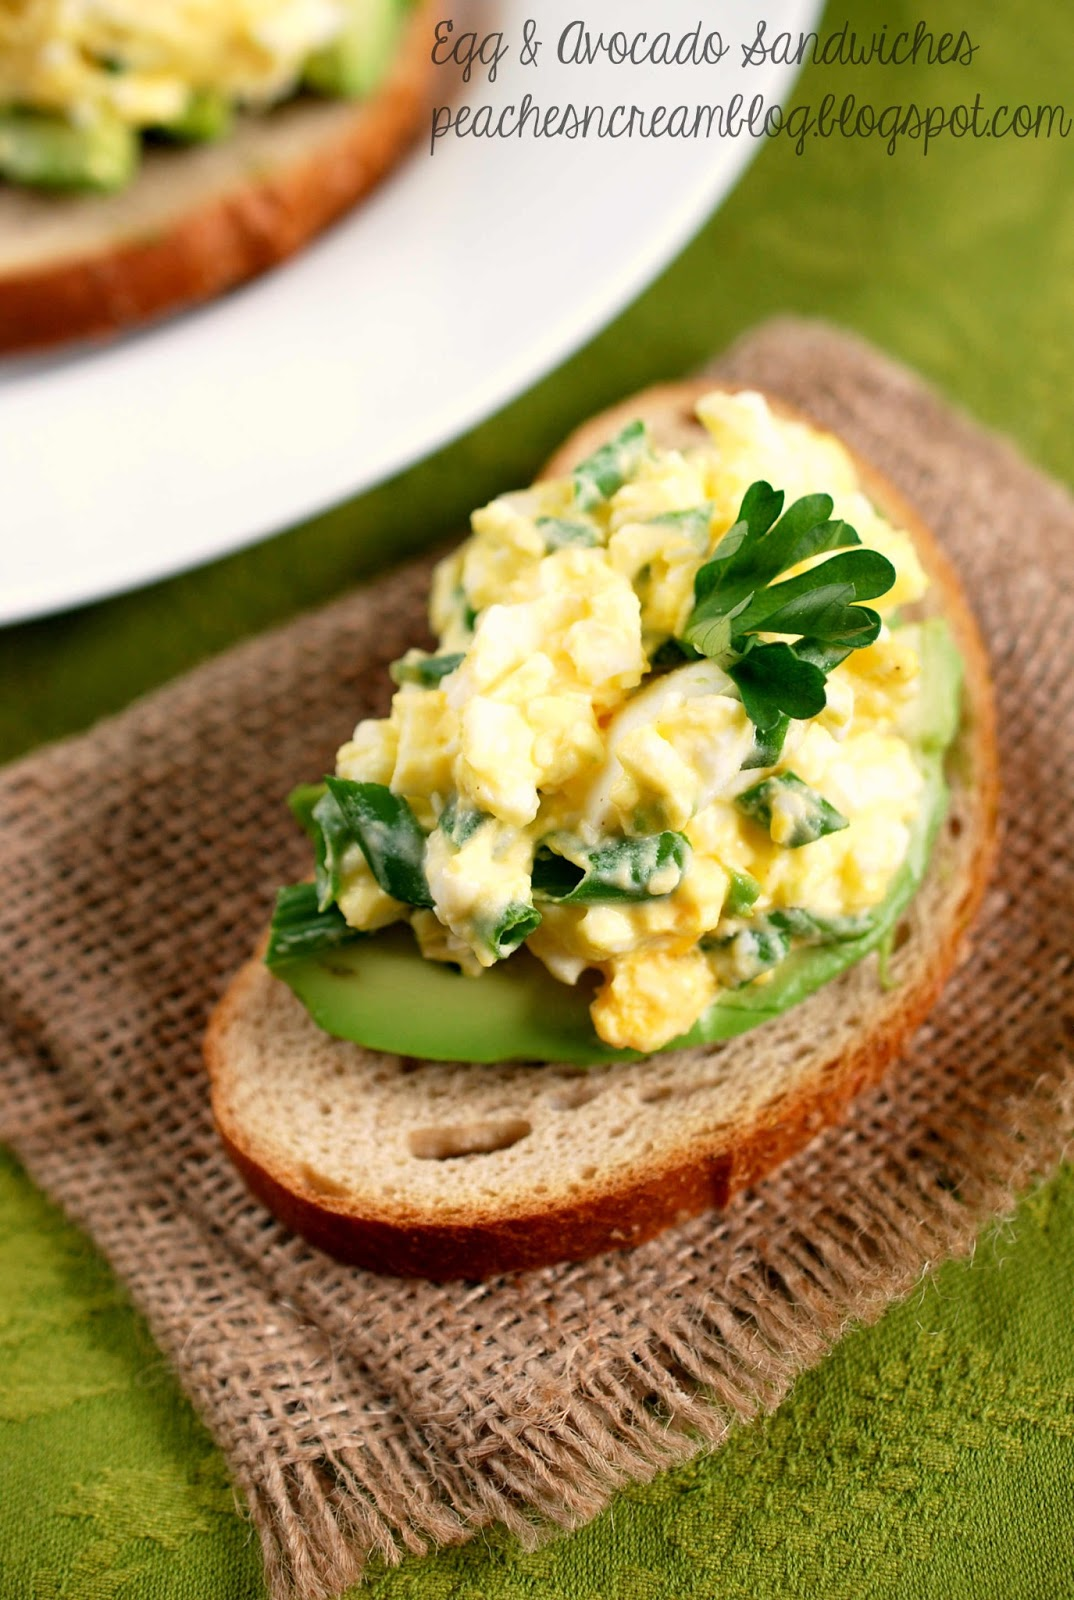 Creamy Guacamole Egg Salad Sandwich Recipes — Dishmaps